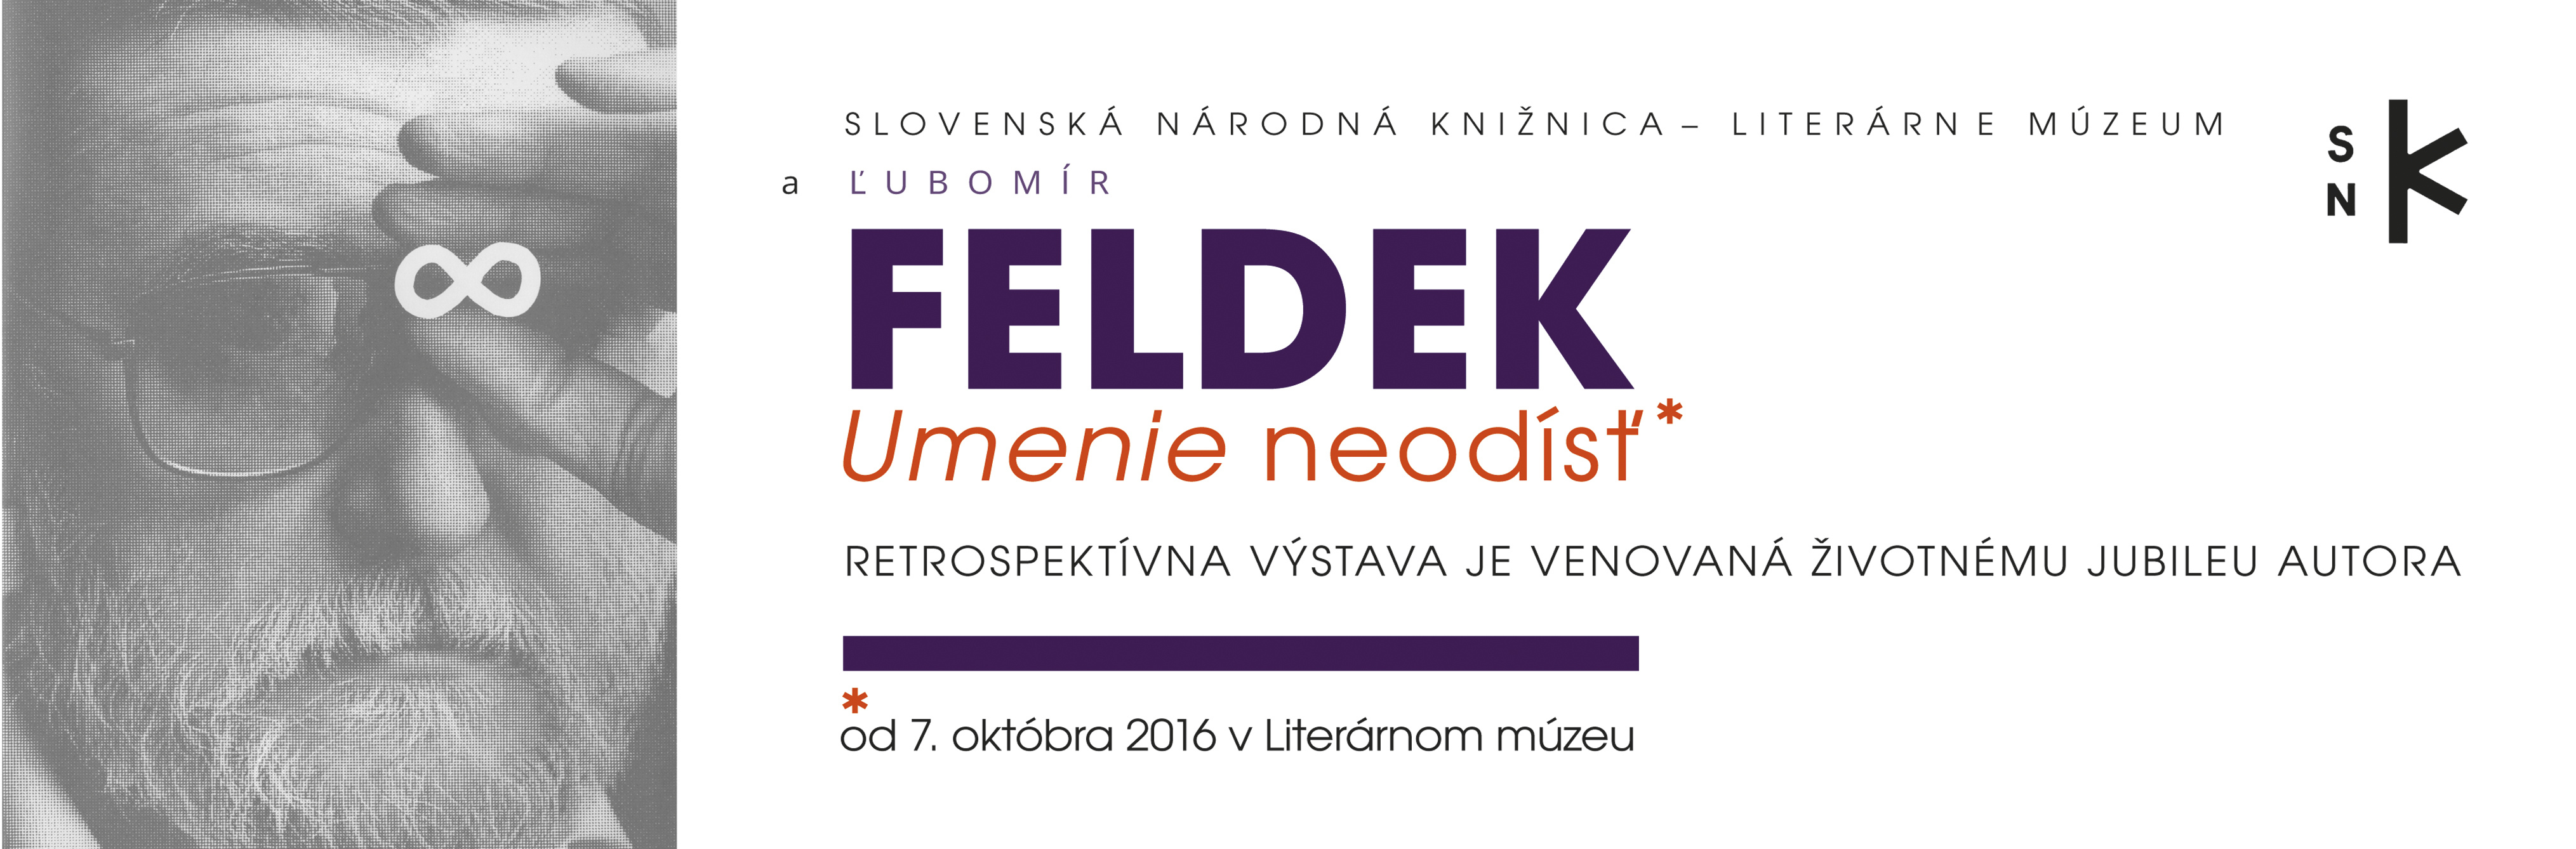 Slovak National Library - Ľubomír Feldek - The Art of Unleaving (exhibition)